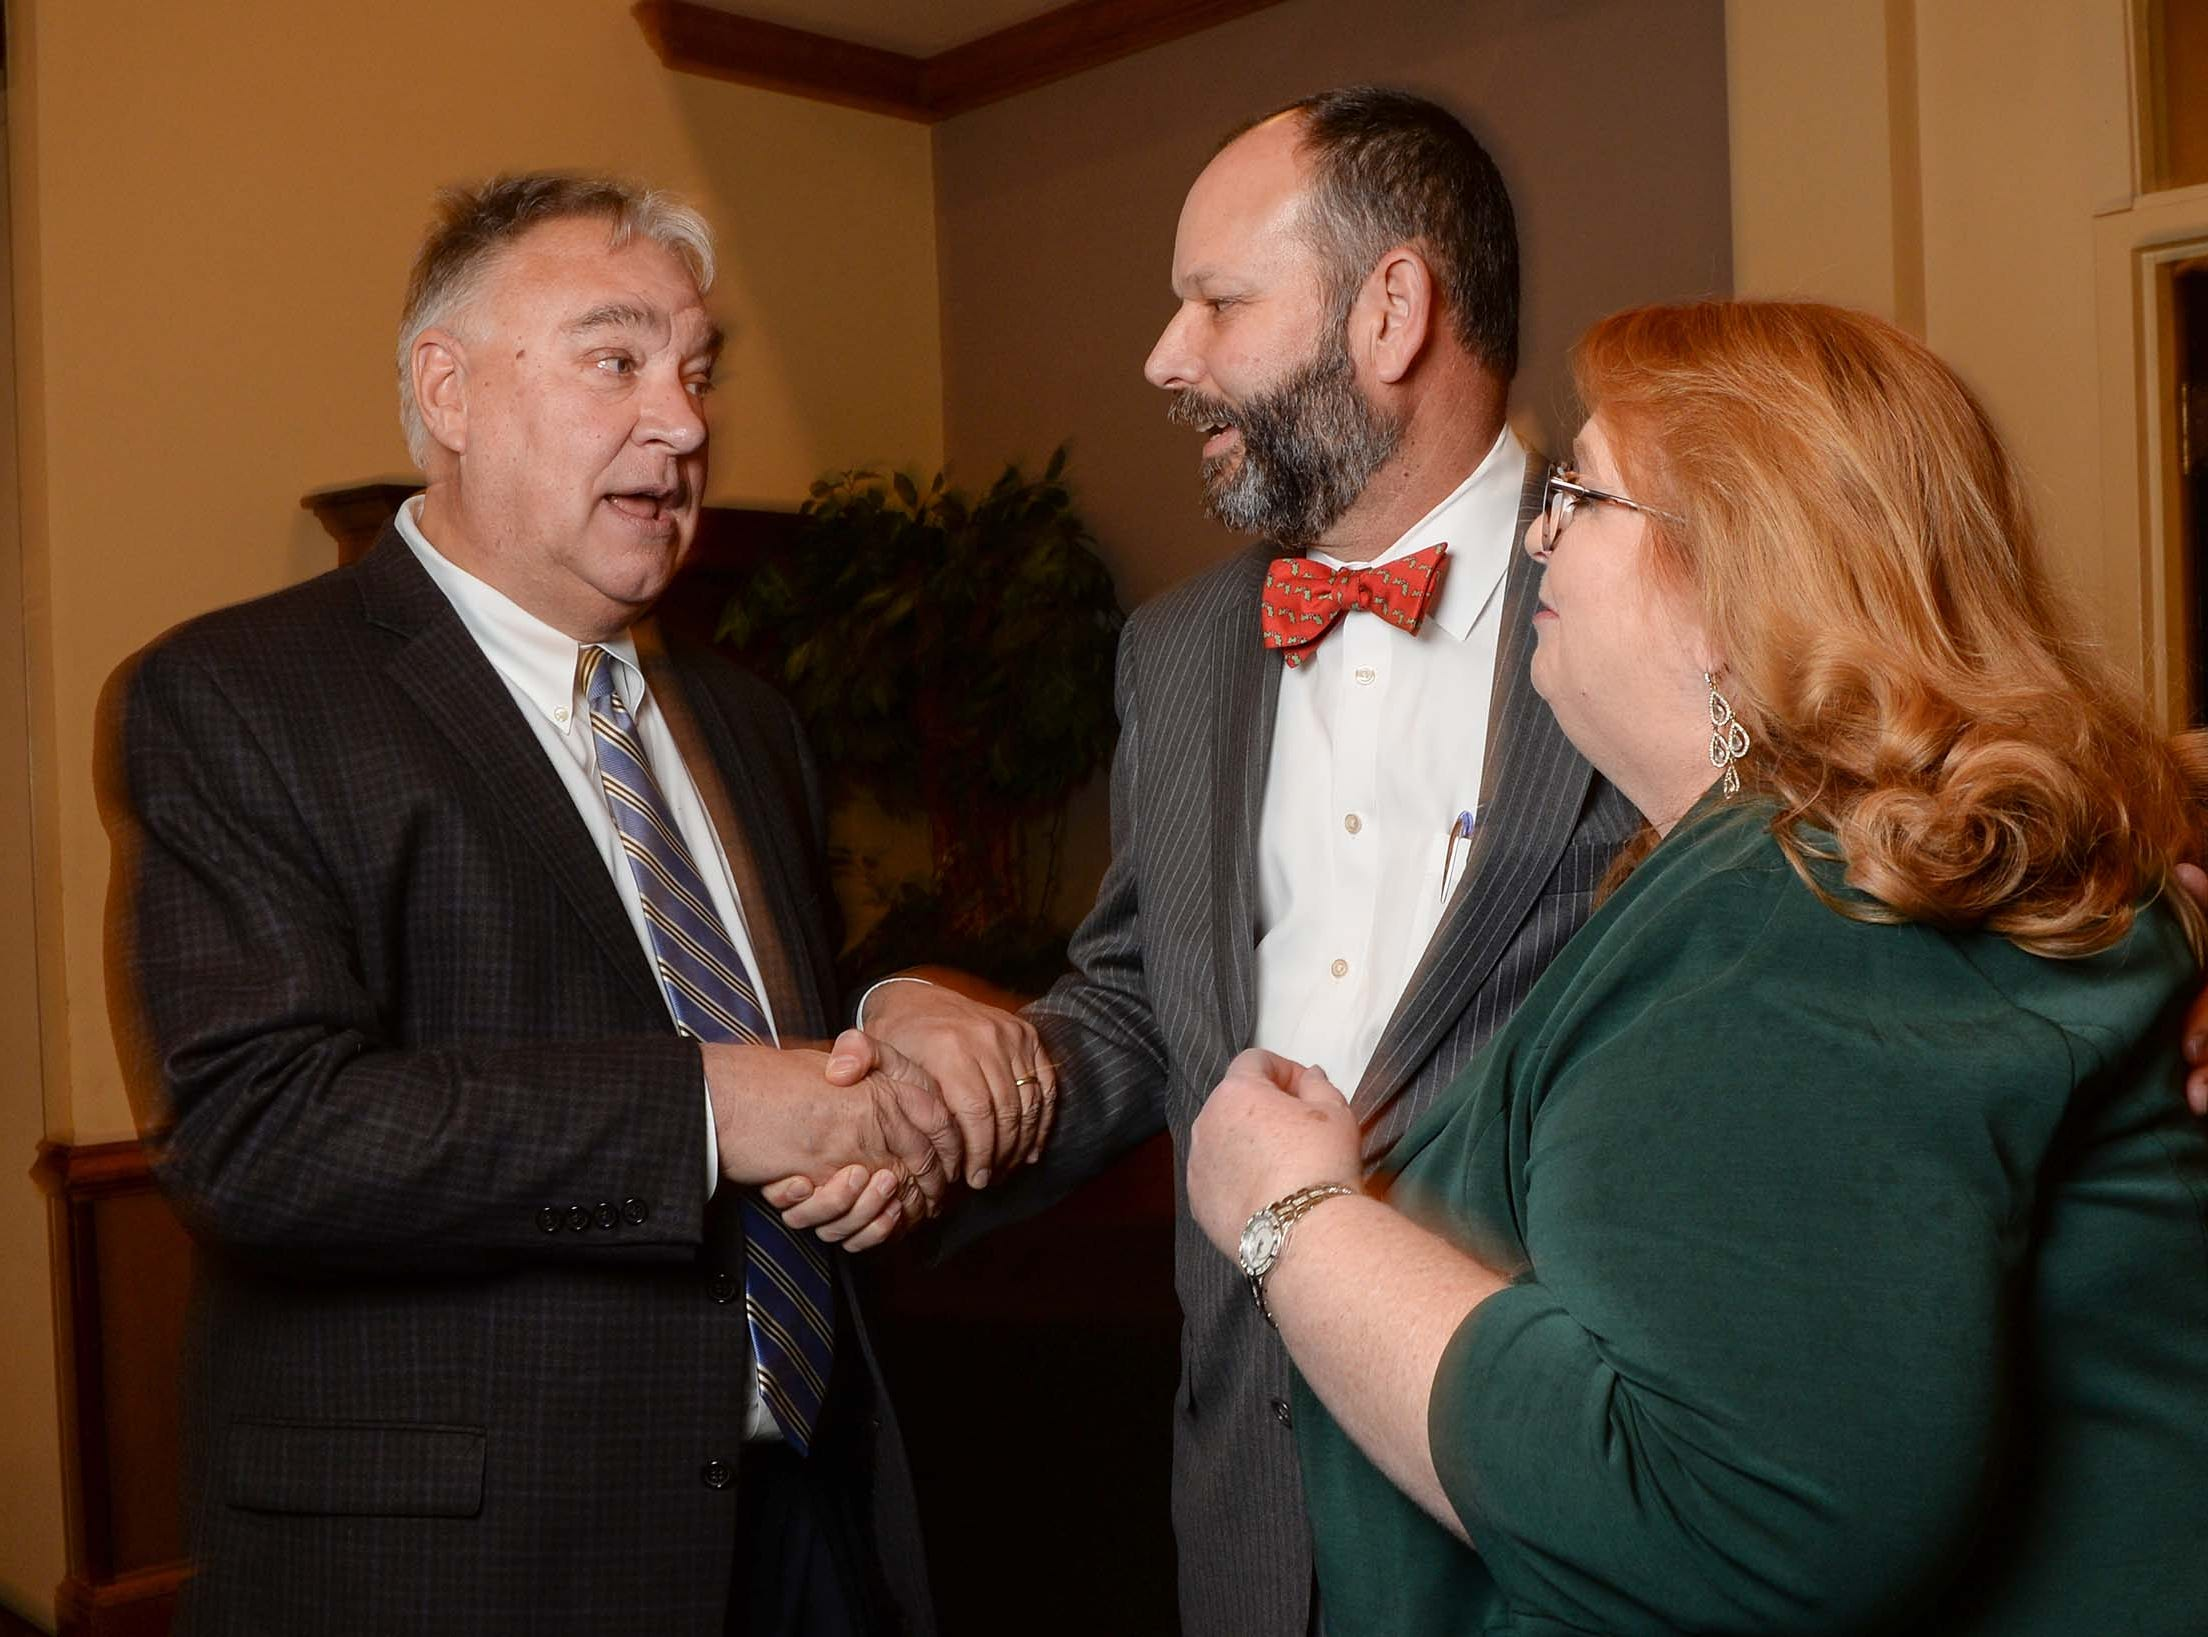 Rusty Burns, left, Anderson County Administrator, talks with State Rep. Brian White before he was presented the 2017-2018 Business Champion Award during the chamber lunch at Tucker's in Anderson Thursday, December 13, 2018. President and CEO Pamela Christopher of the Anderson Area Chamber of Commerce is on the right.